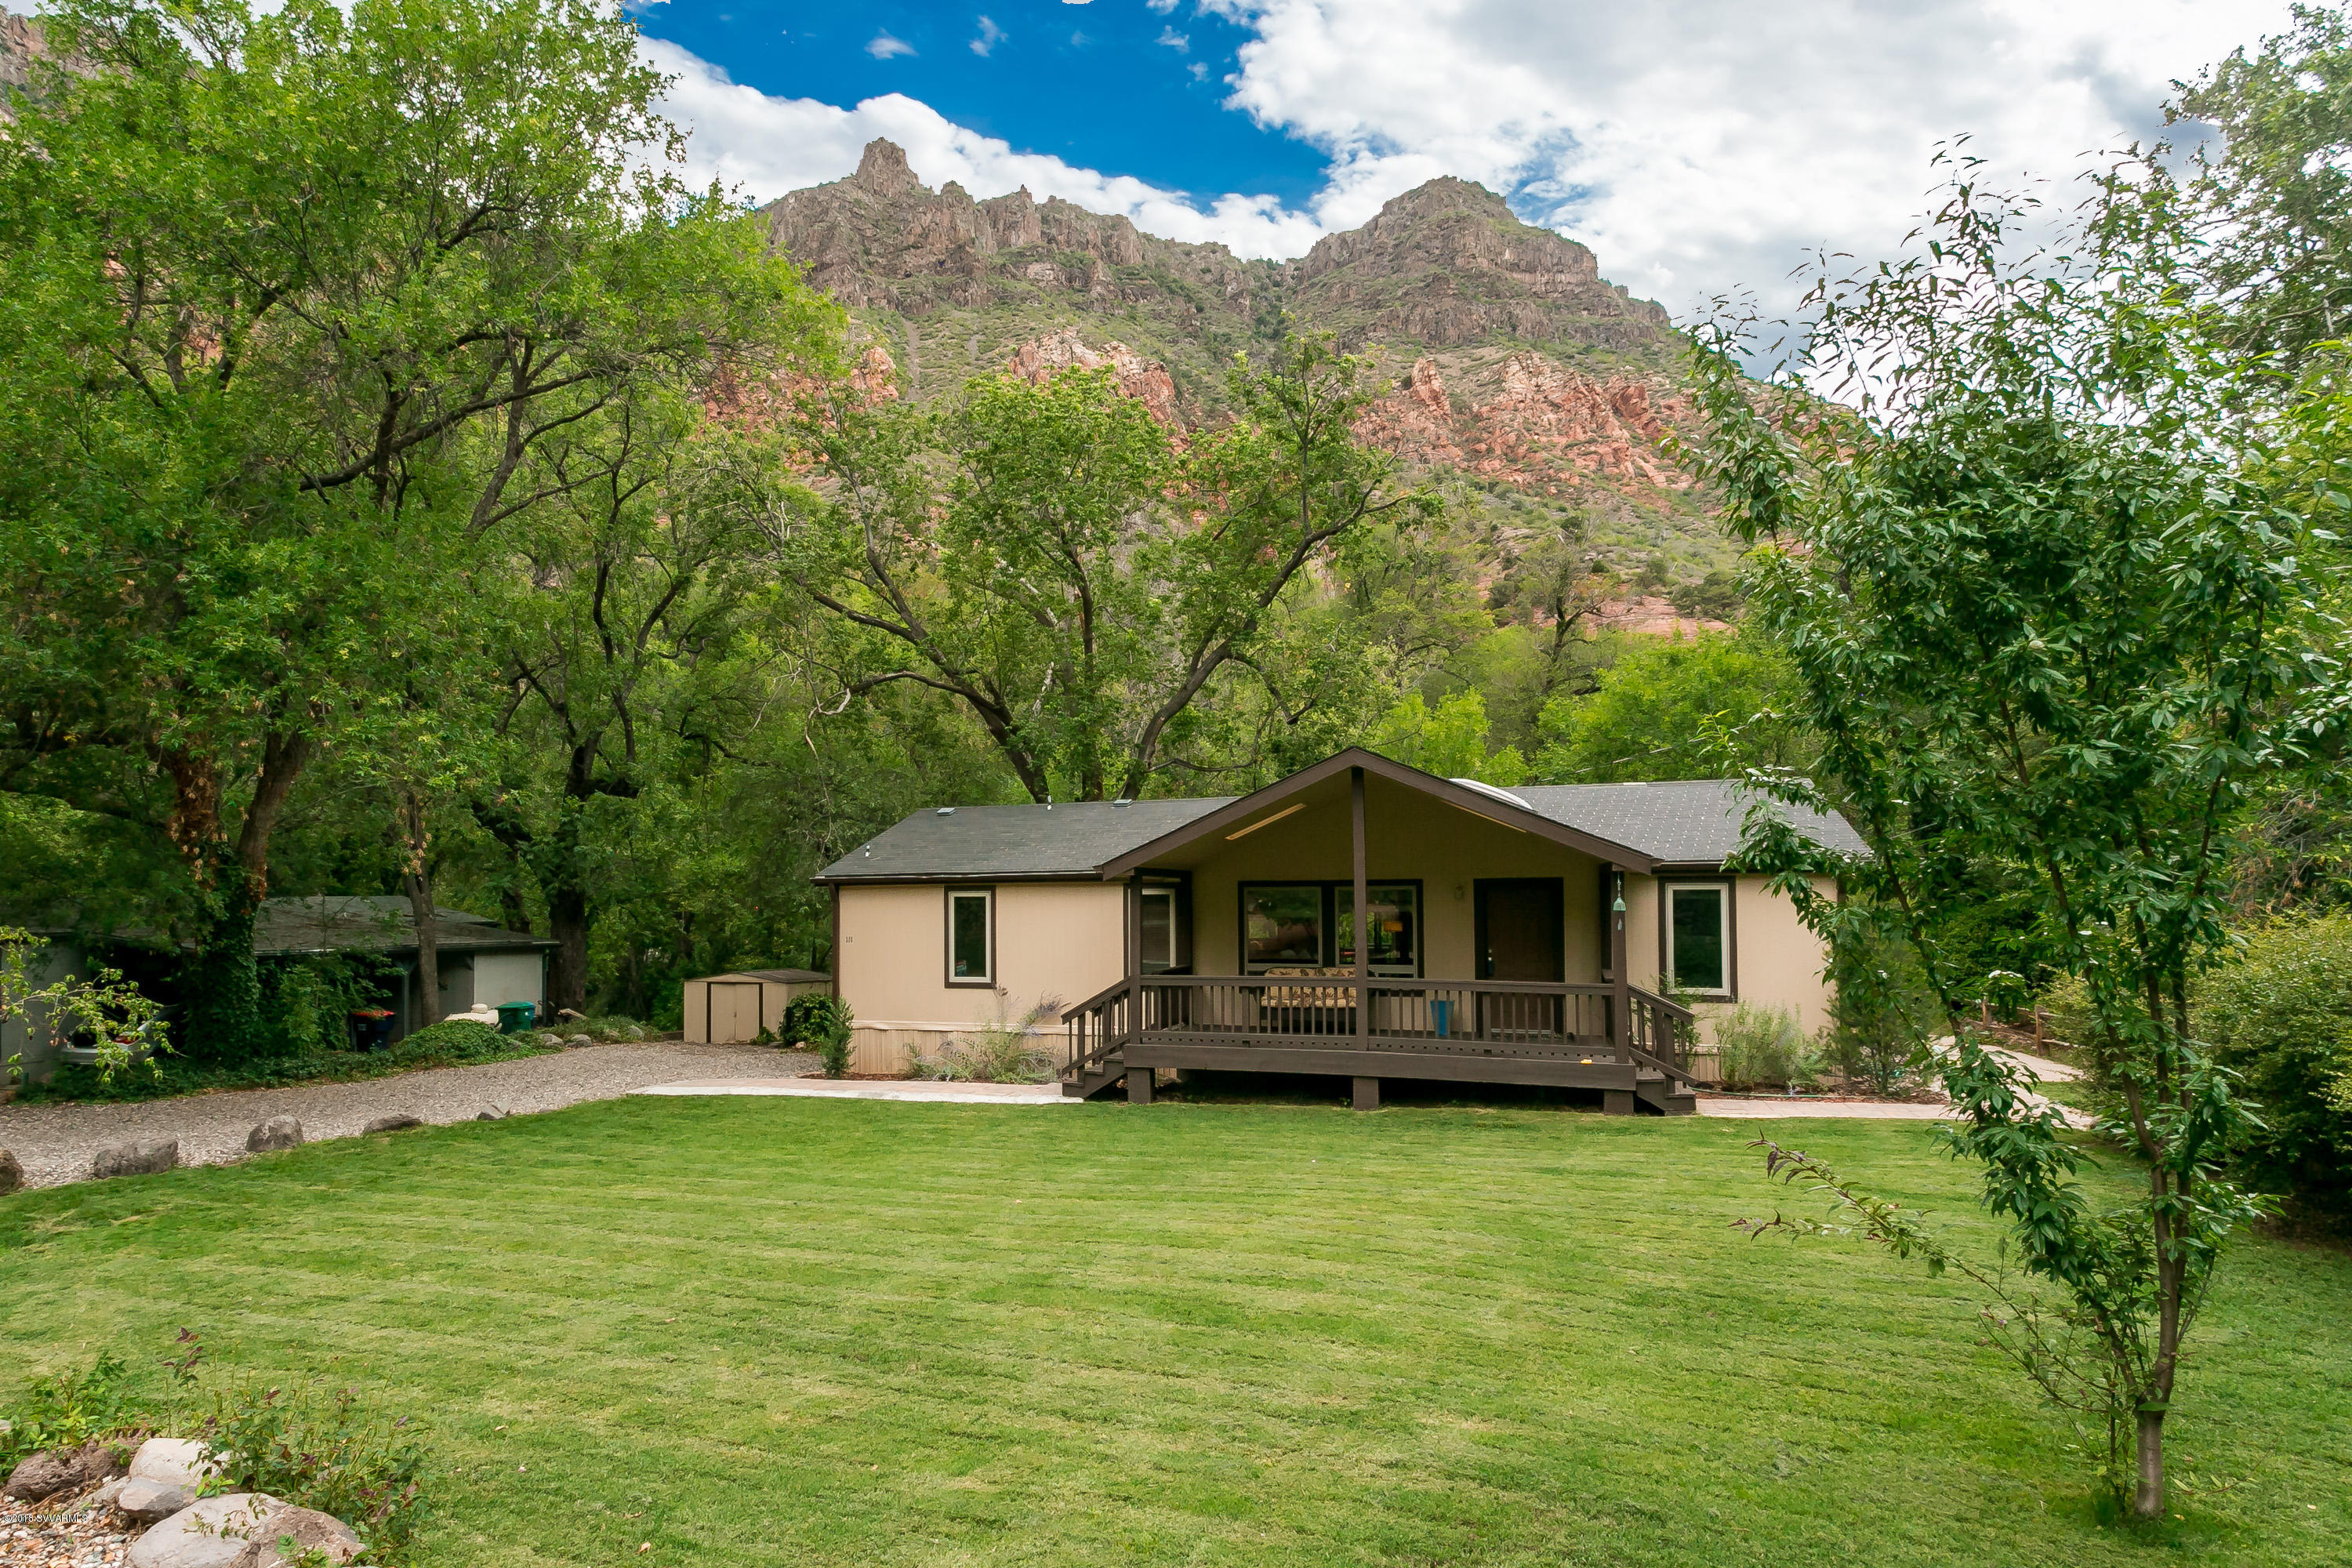 111 Lower Indian Rd Sedona, AZ 86336